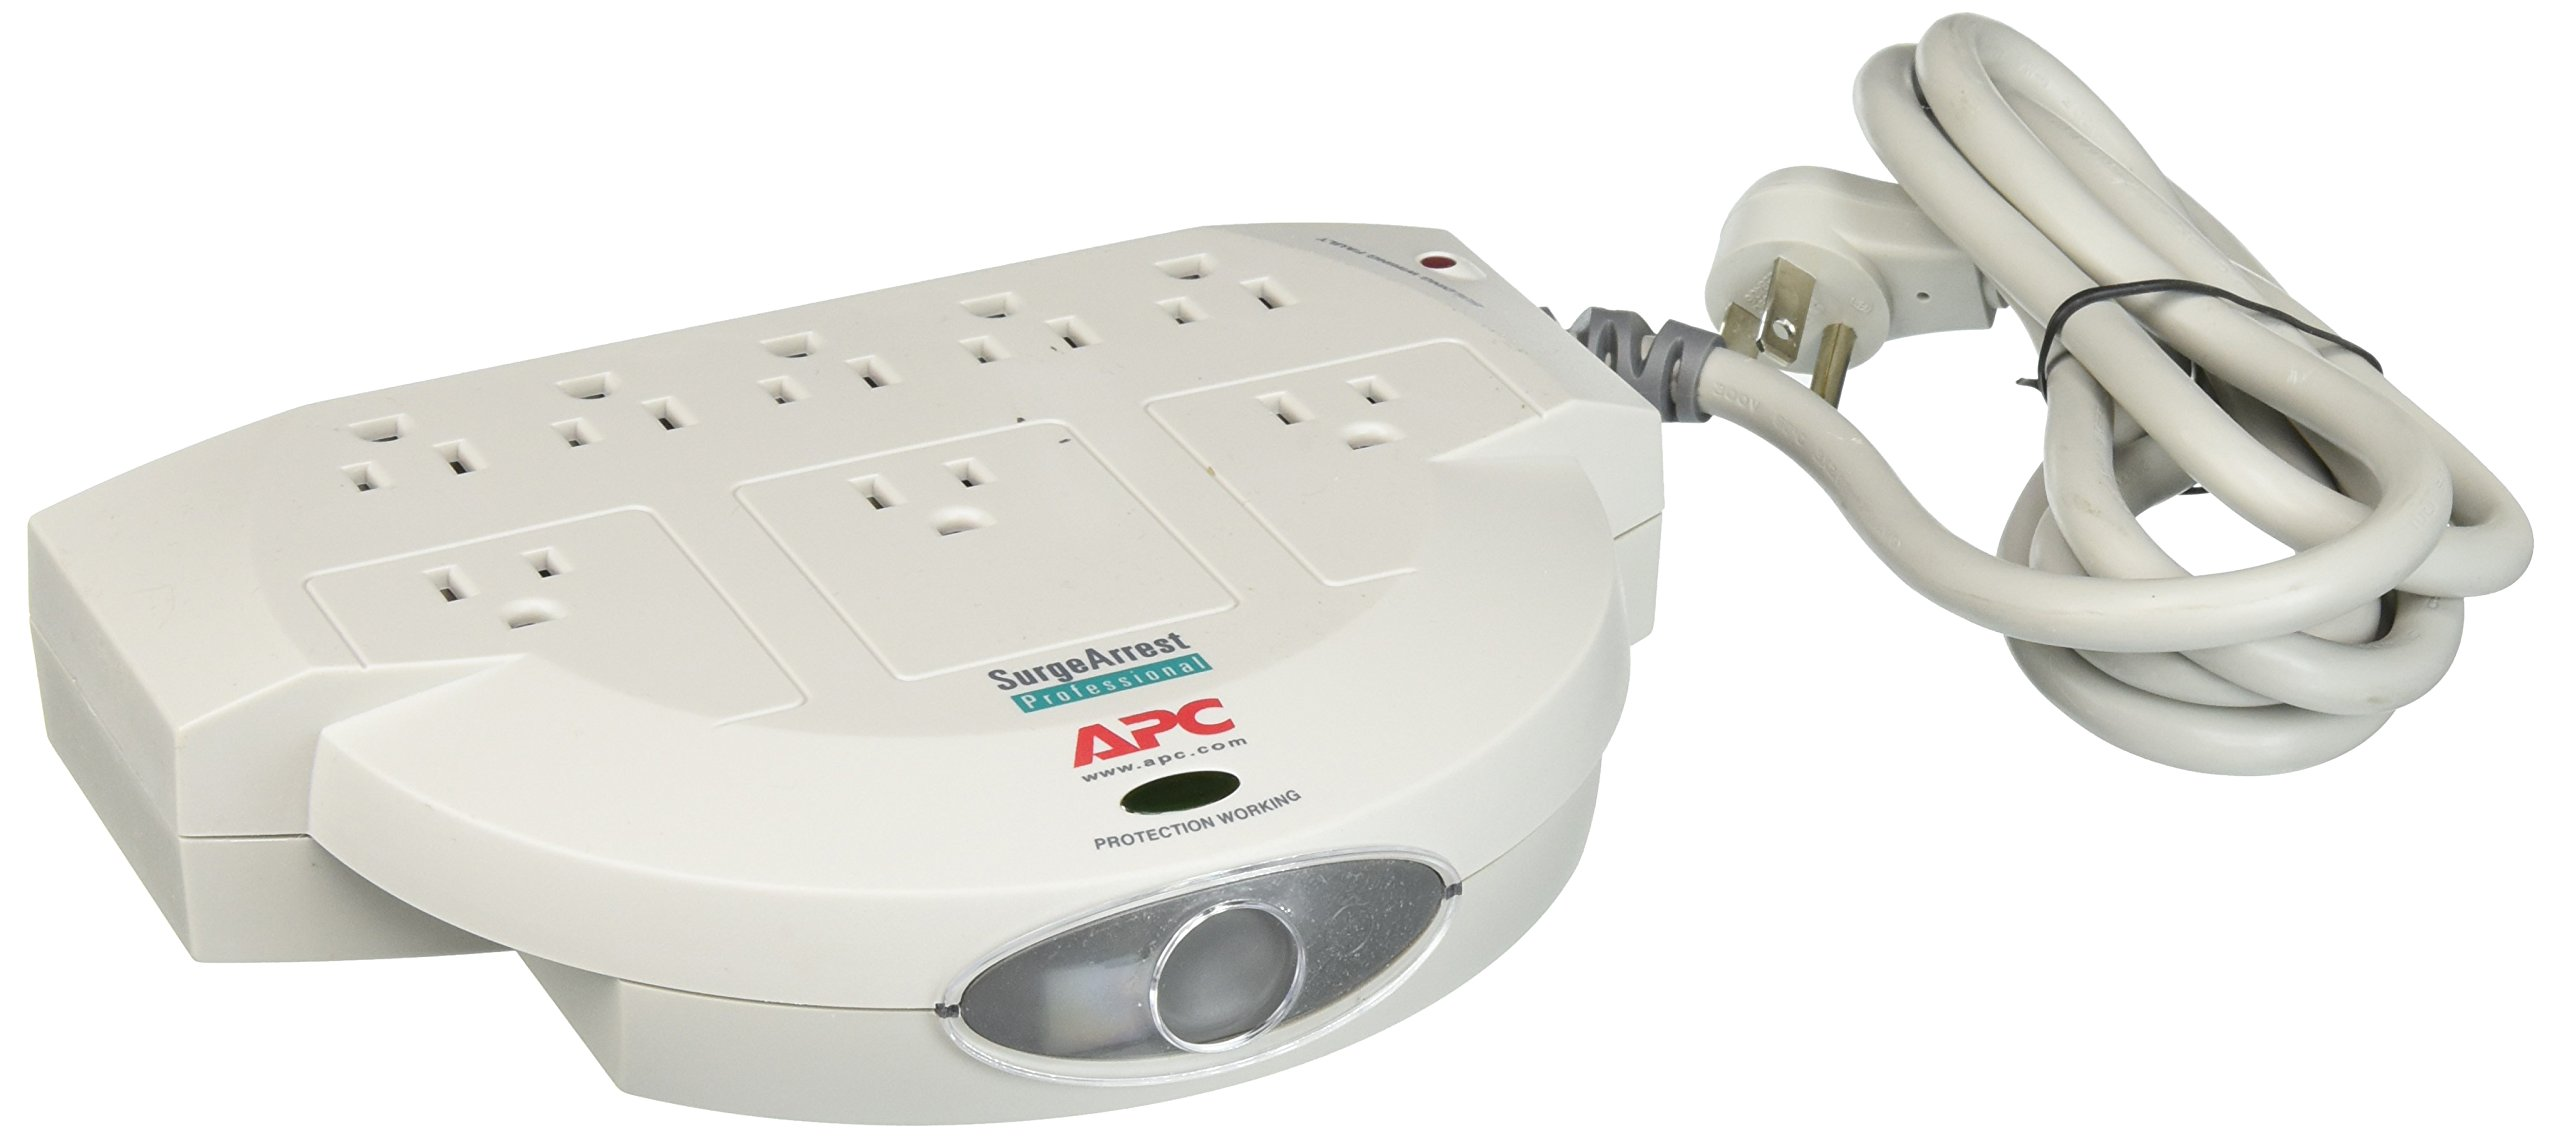 APC (PRO8T2) Professional 8-Outlet SurgeArrest Home/Office with 2 Pairs Phone Line Protection Surge Protector